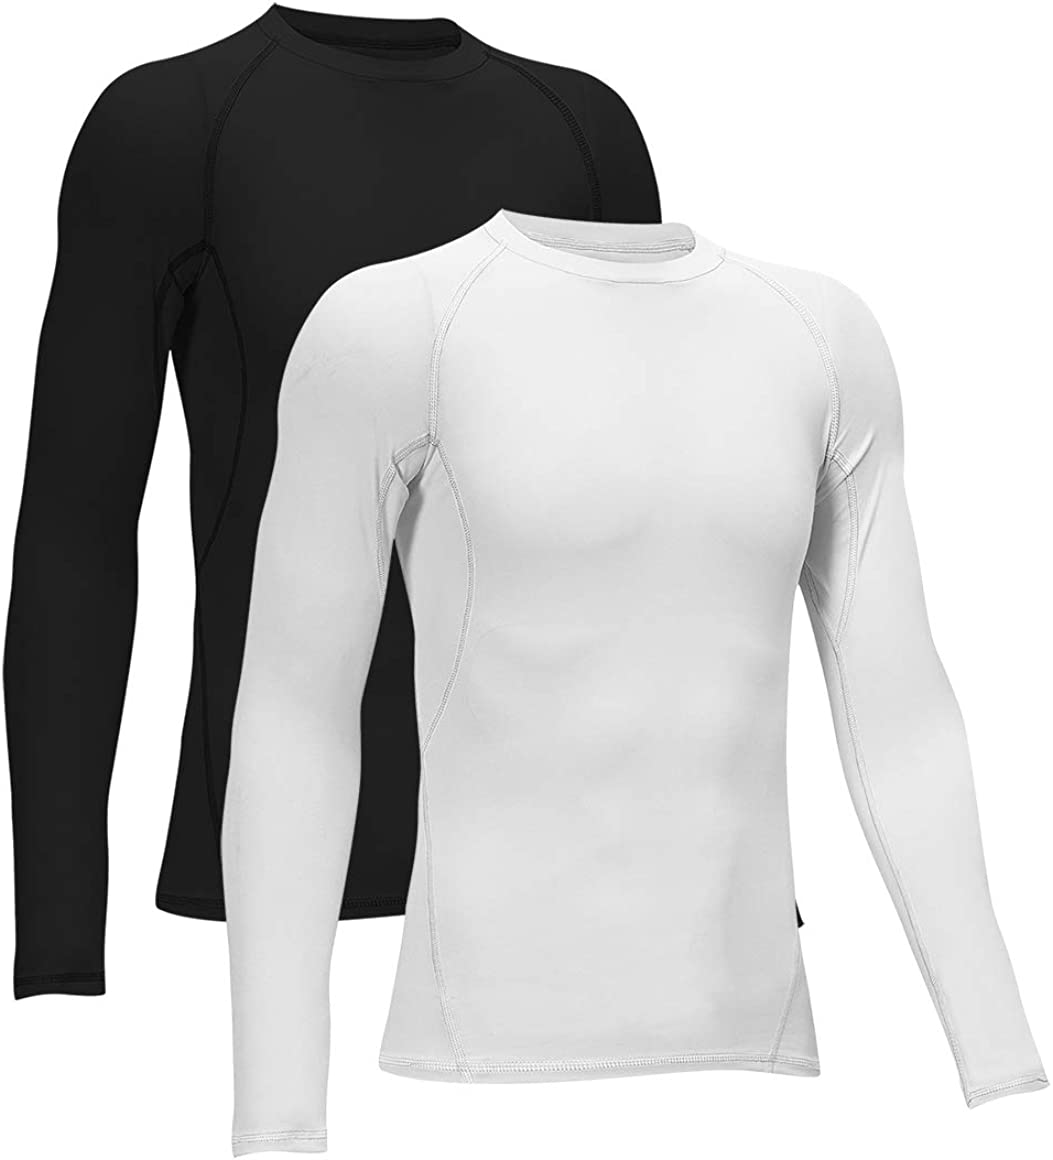 TELALEO Boys' Girls' Compression Shirts Youth Long Sleeve Undershirt Sports Dri Fit Moisture Wicking Baselayer